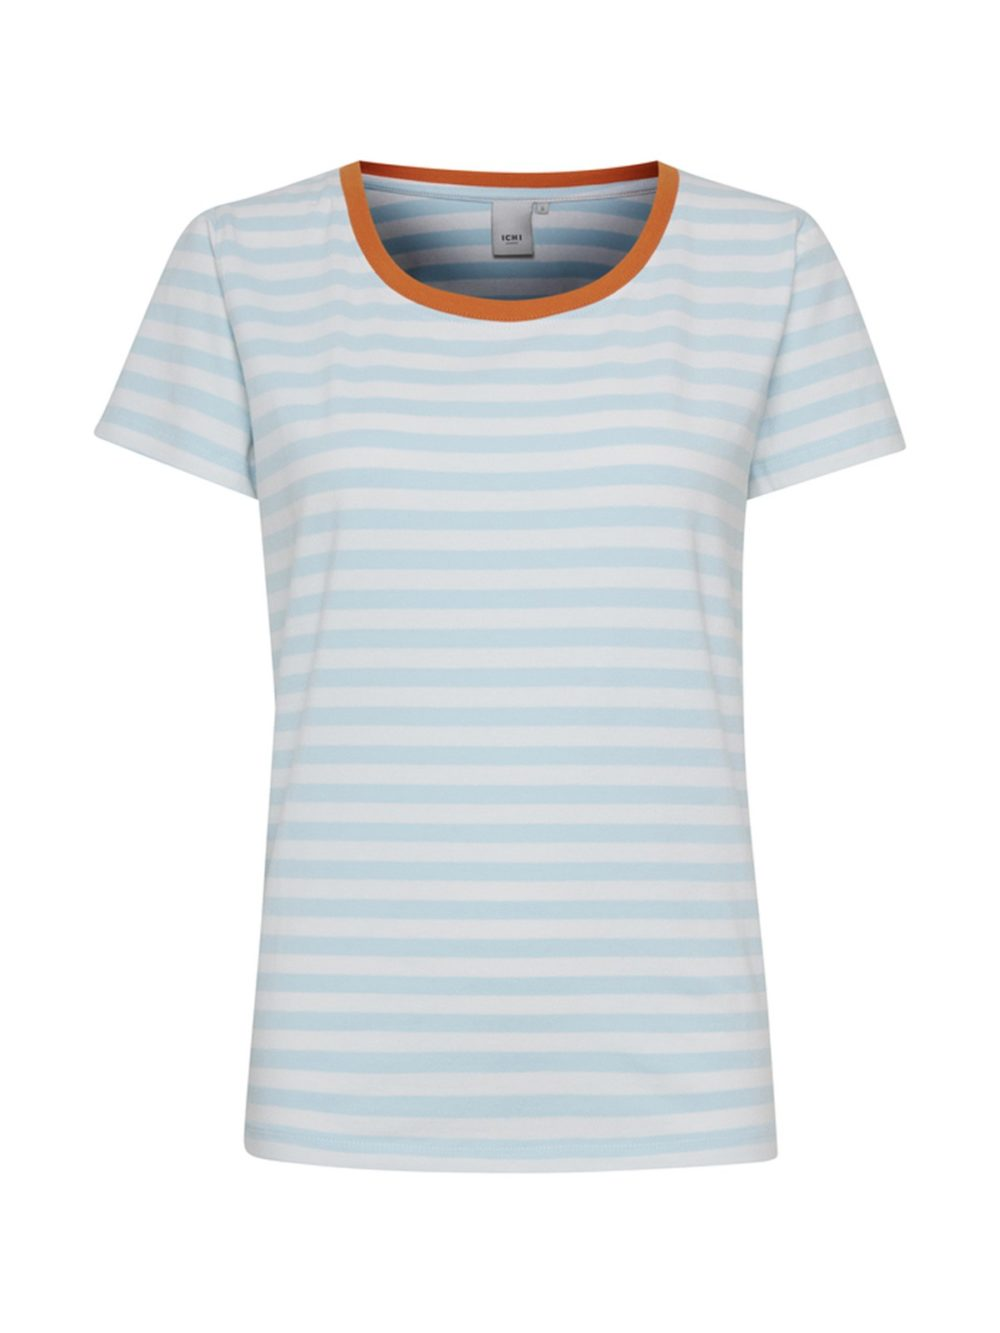 Thea T-Shirt ICHI Katie Kerr Women's Clothing